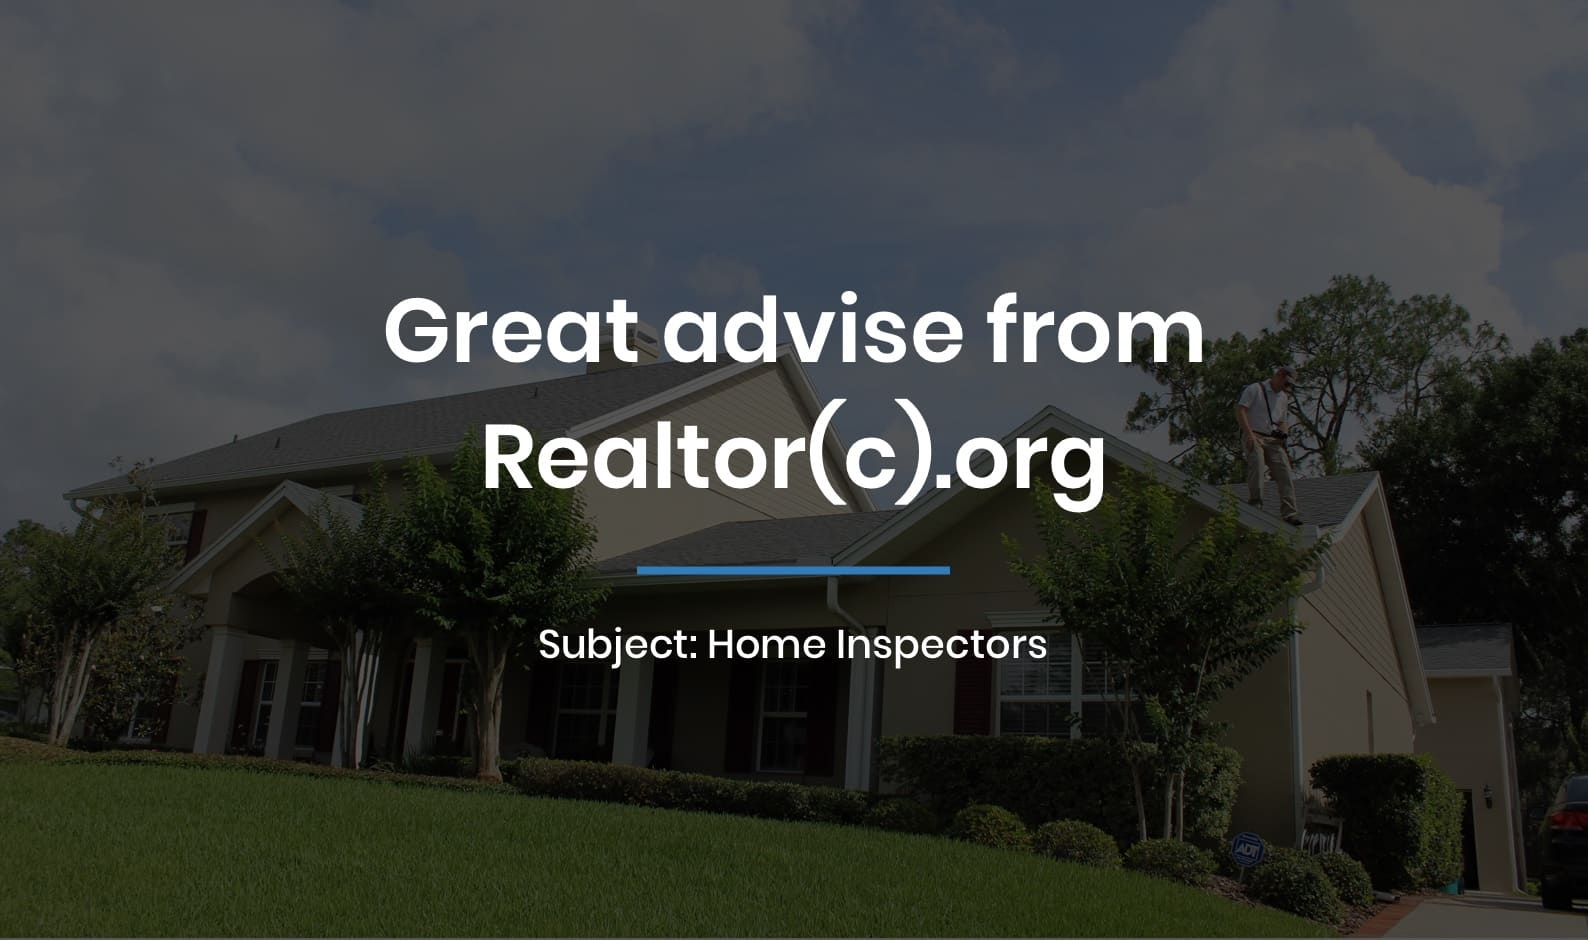 Great advise from Realtor(c).org